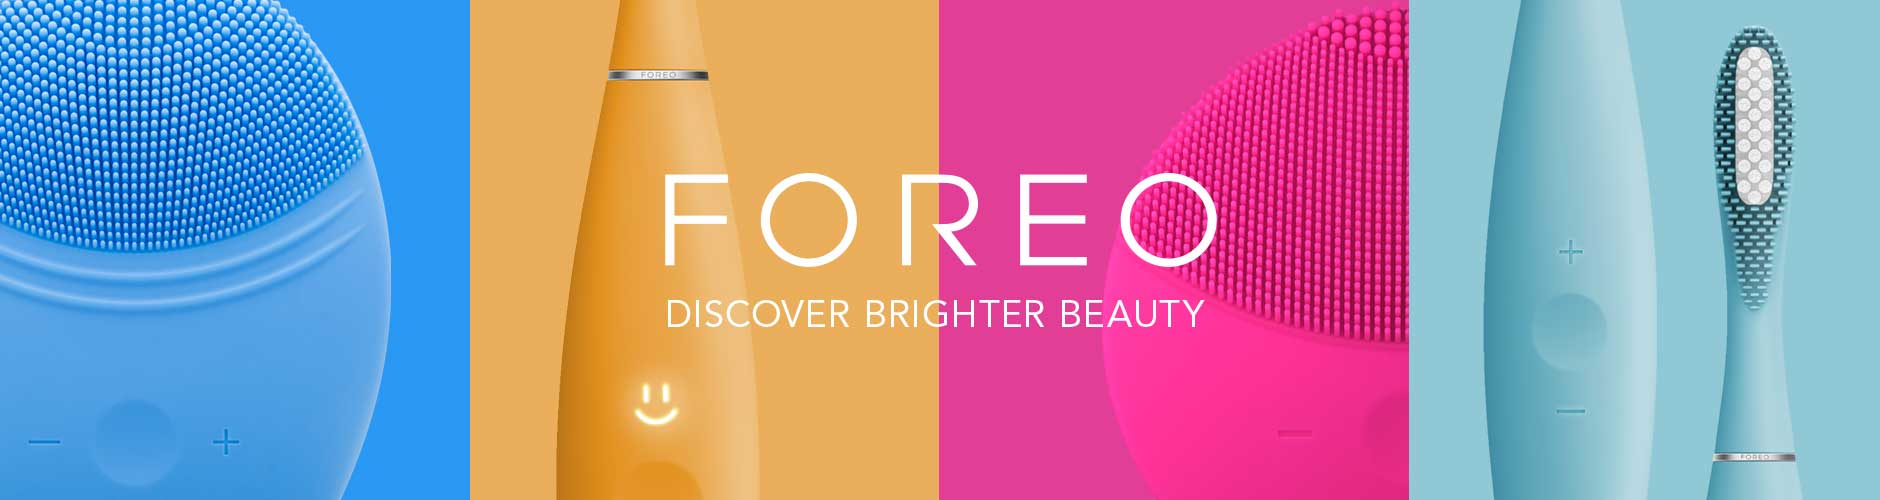 Foreo: Discover Brighter Beauty